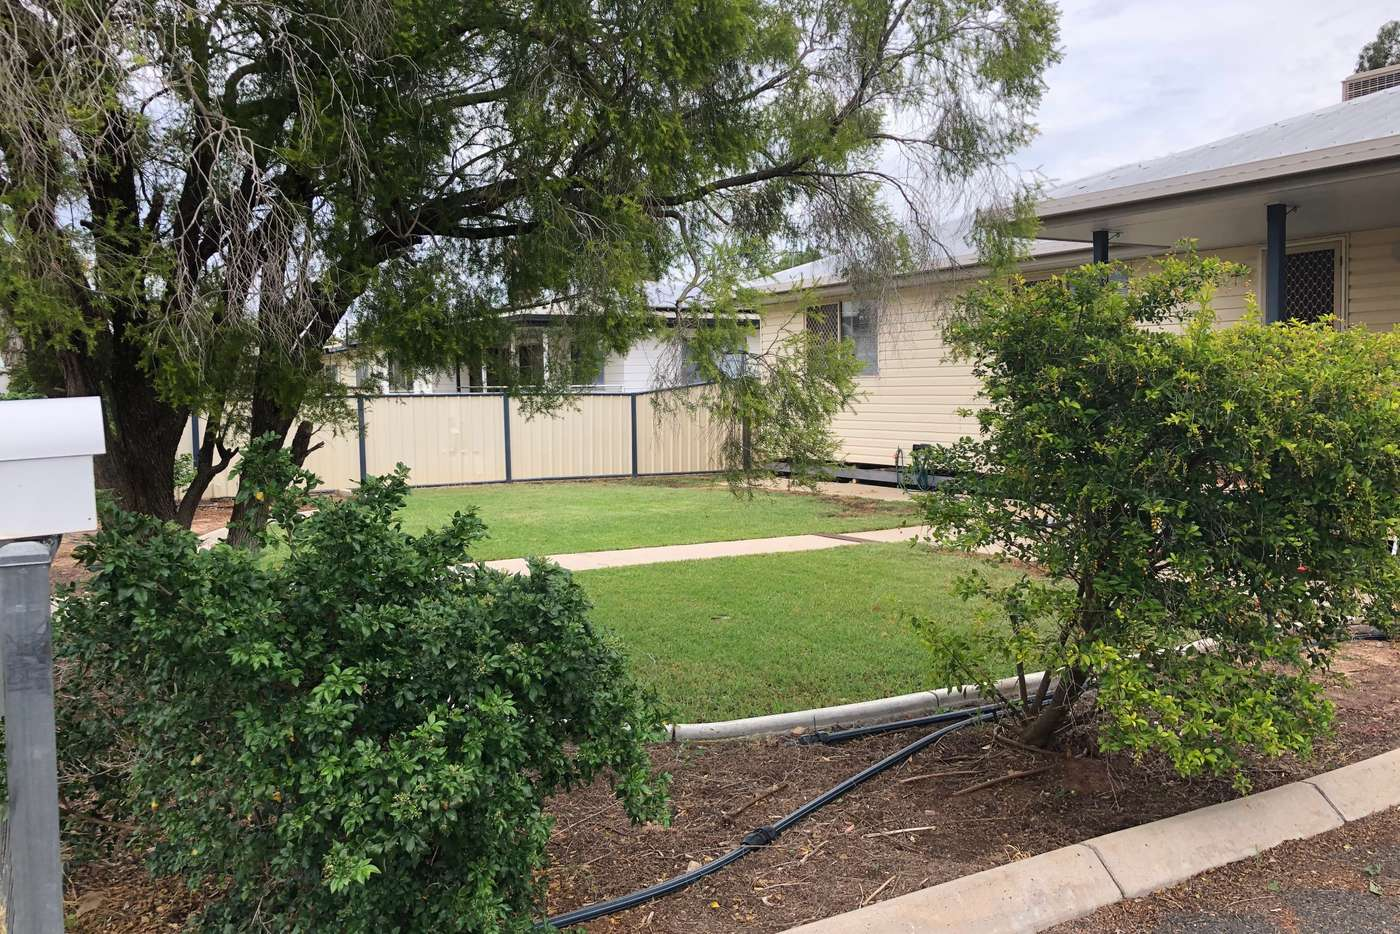 Main view of Homely house listing, 8 Derry Street, Roma QLD 4455